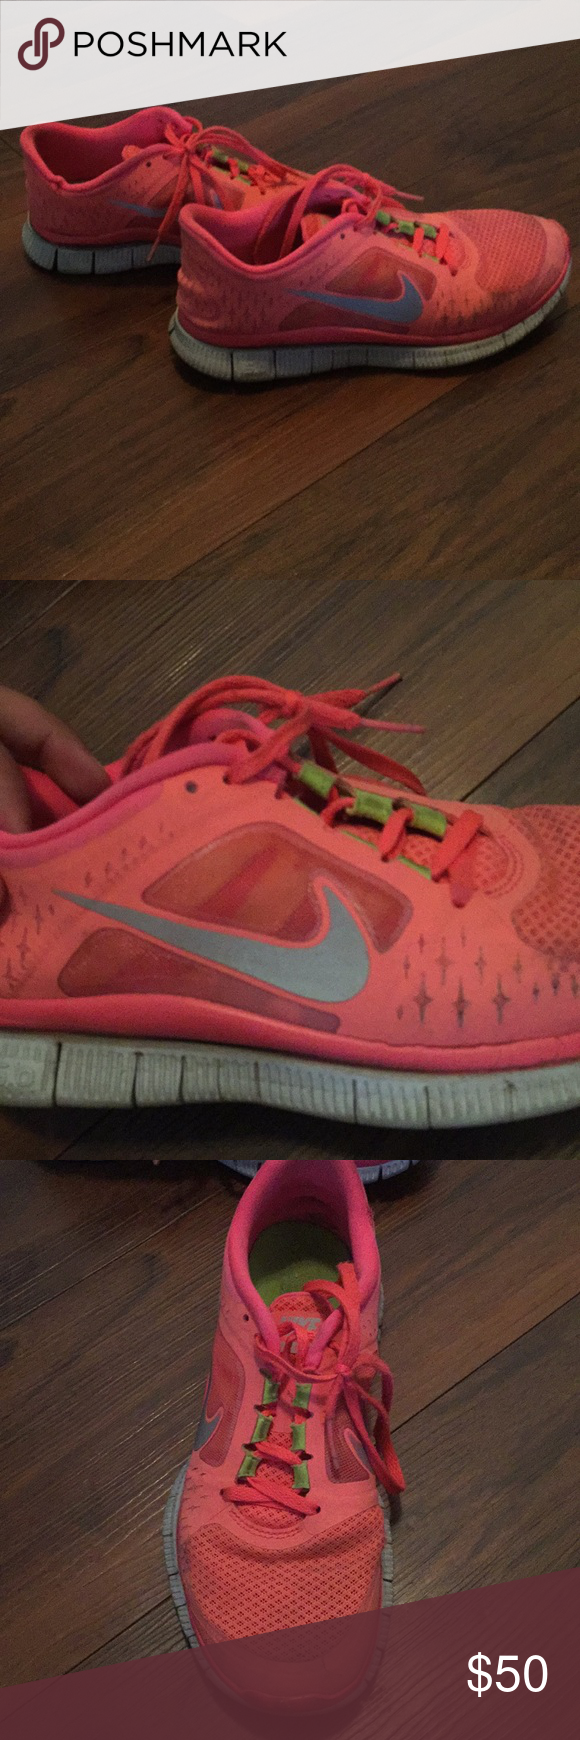 wholesale dealer 3557d 24e1a peach and neon green accents Nike free run 3, 5.0 Great condition, very  comfortable Very lightweight Will wash   clean before shipping out Nike  Shoes ...